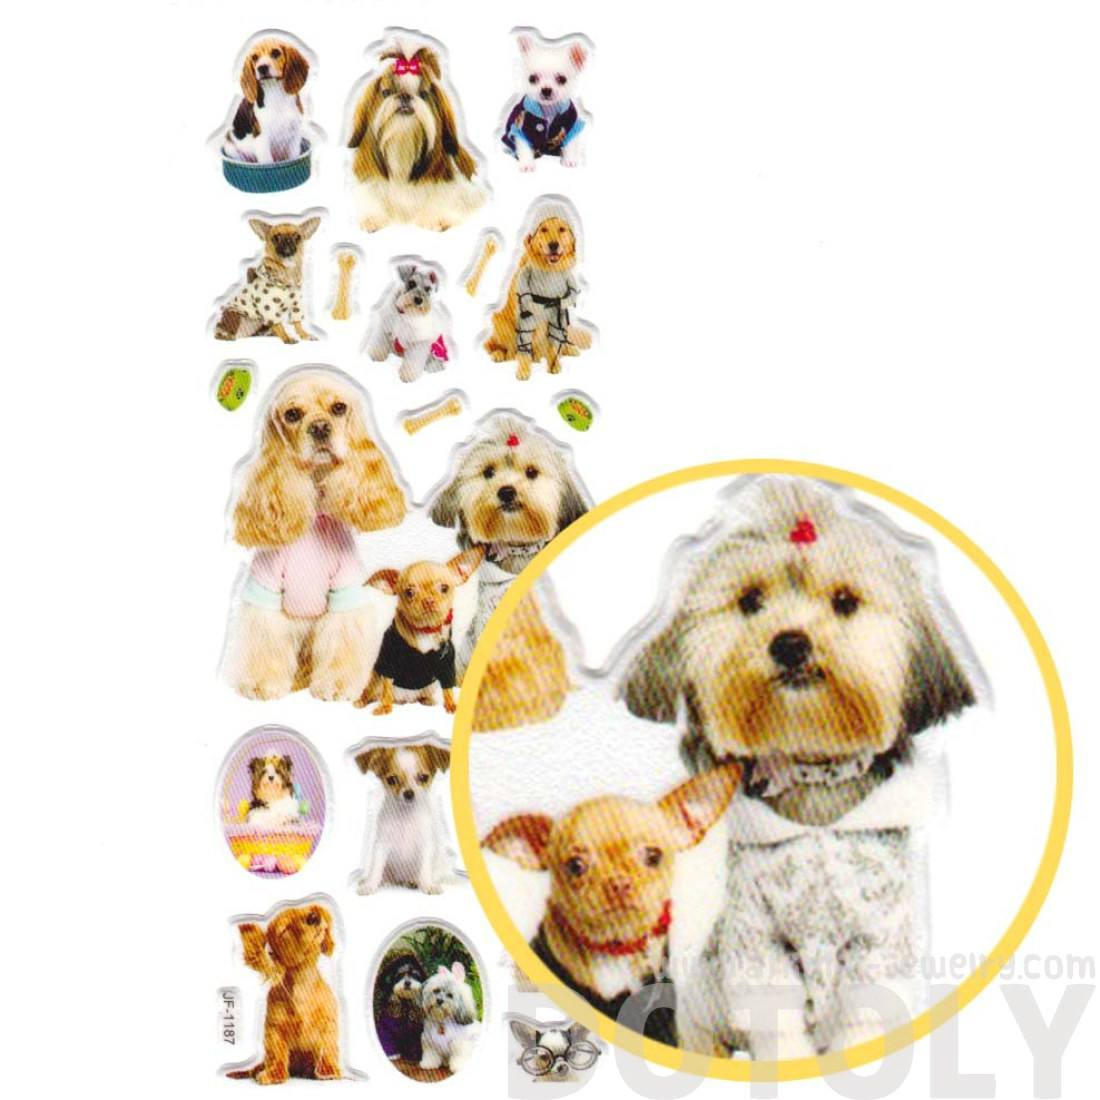 Realistic Puppy Dogs in Funny Costumes Shaped Animal Photo Stickers